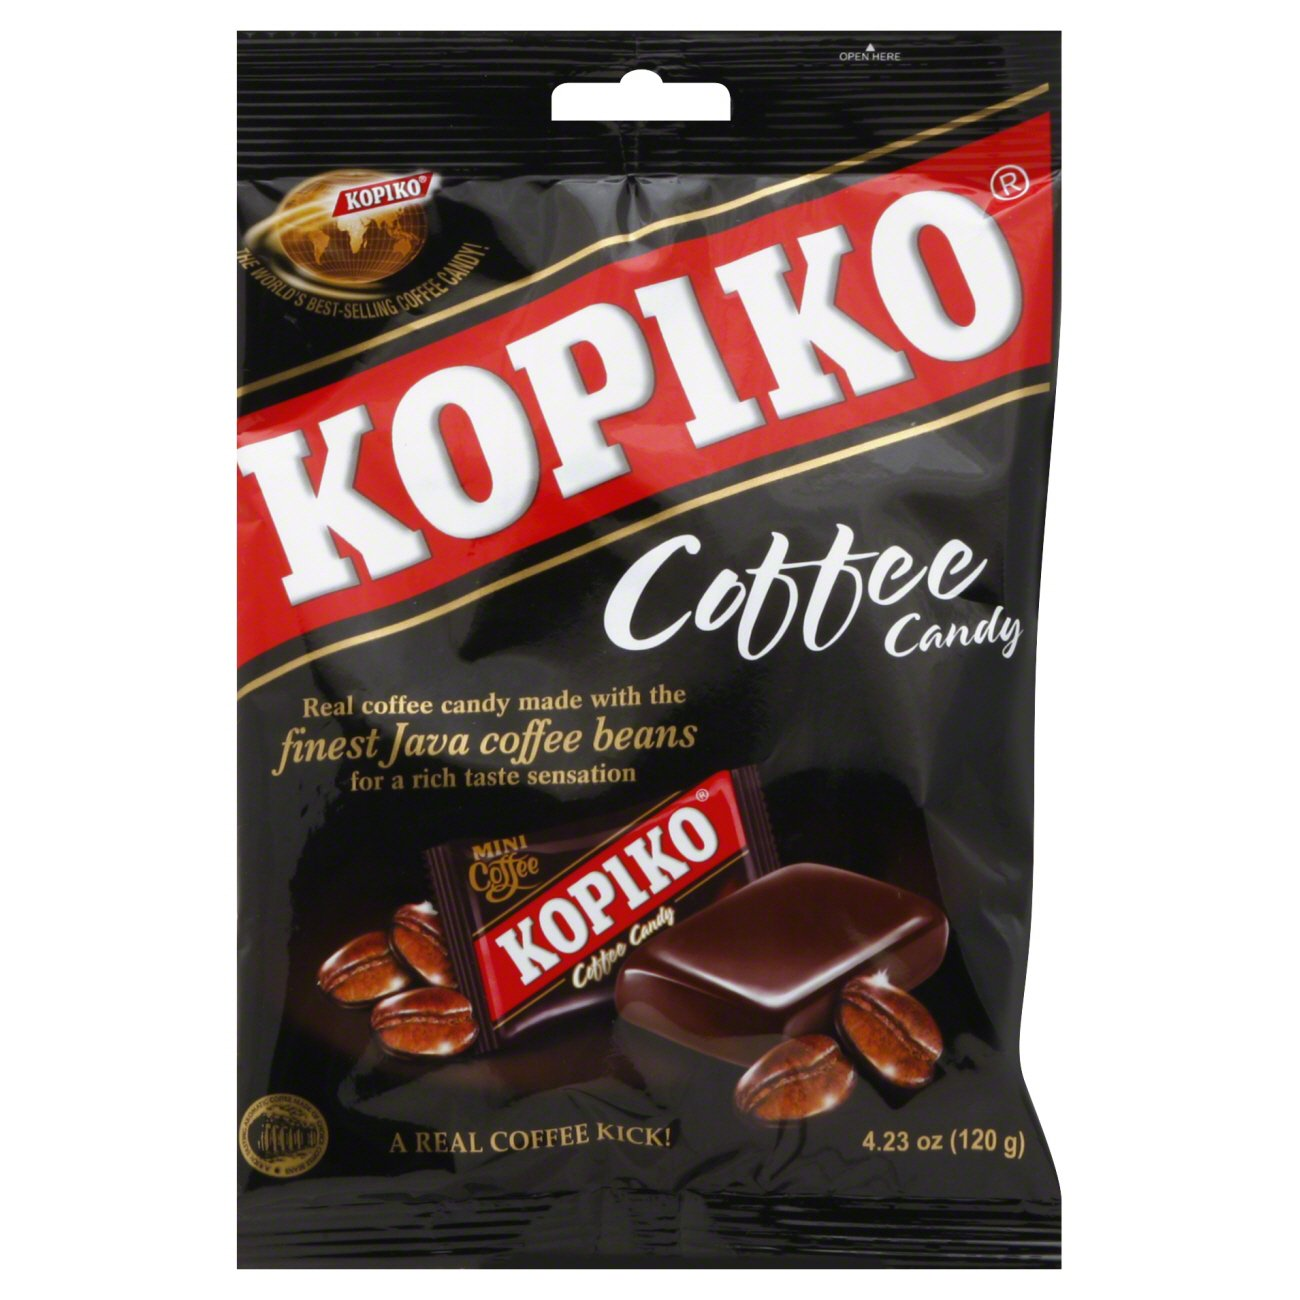 Kopiko Coffee Candy, 4.23 Oz